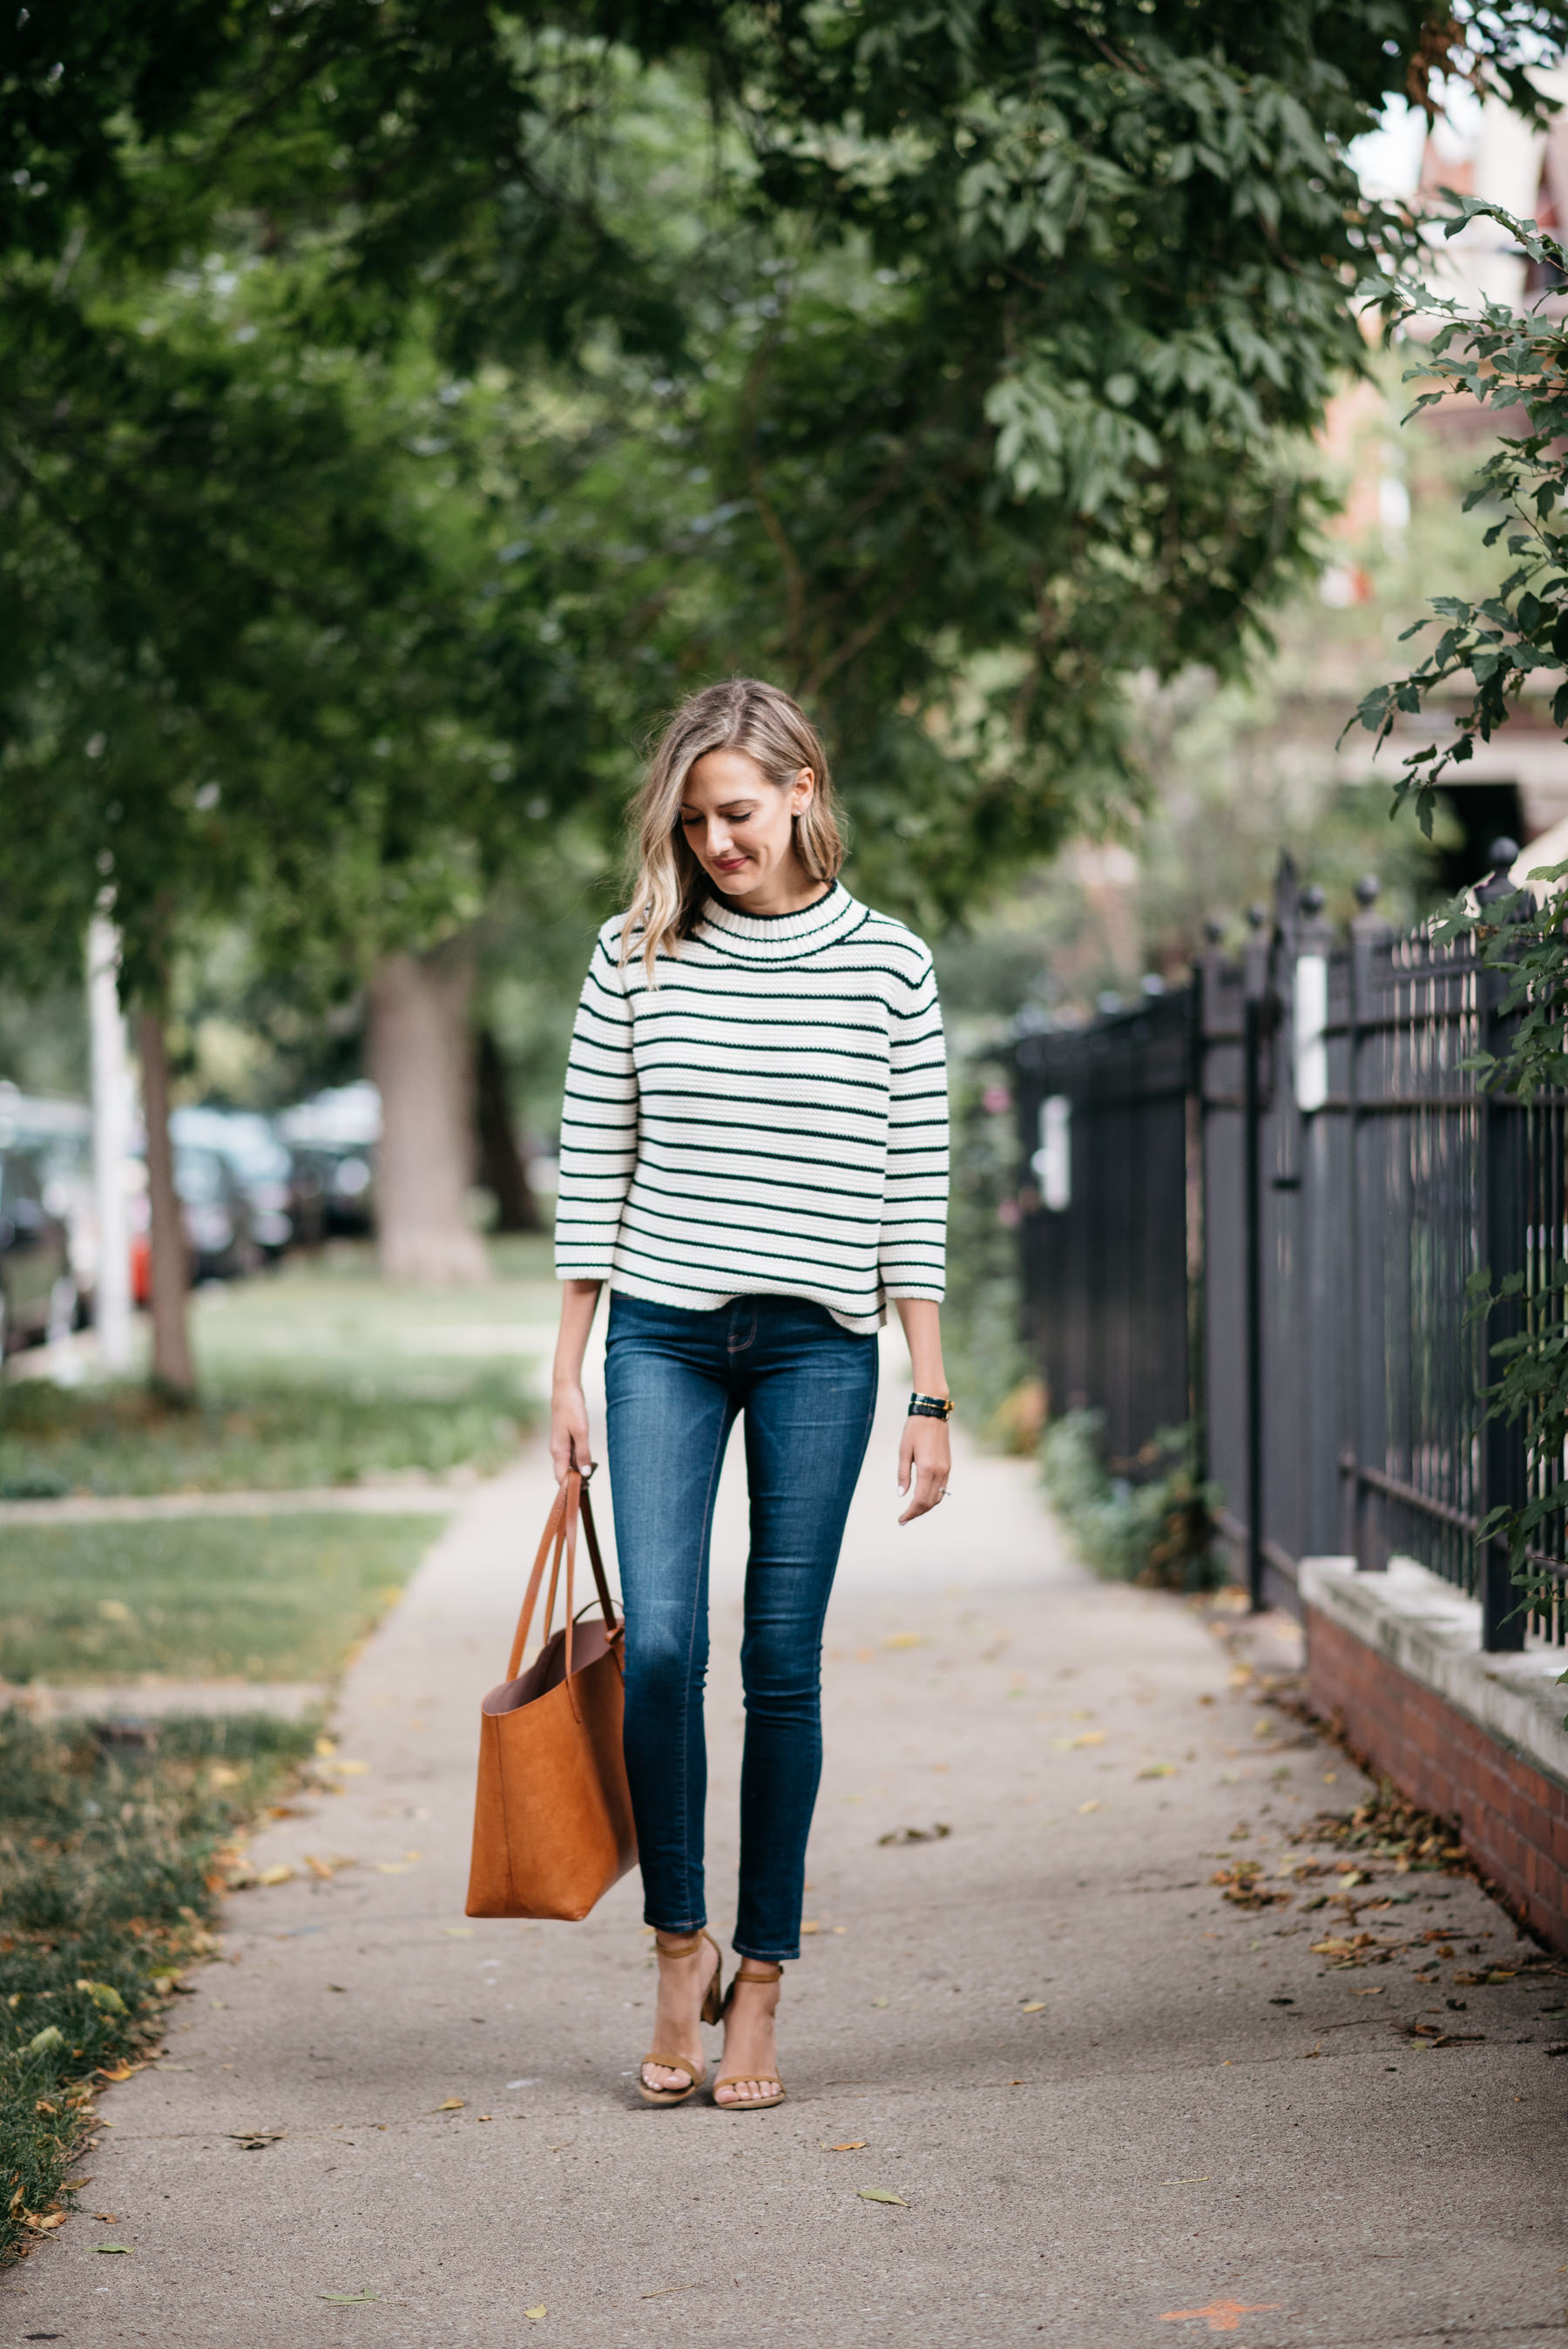 stripes sweater jeans outfit fall